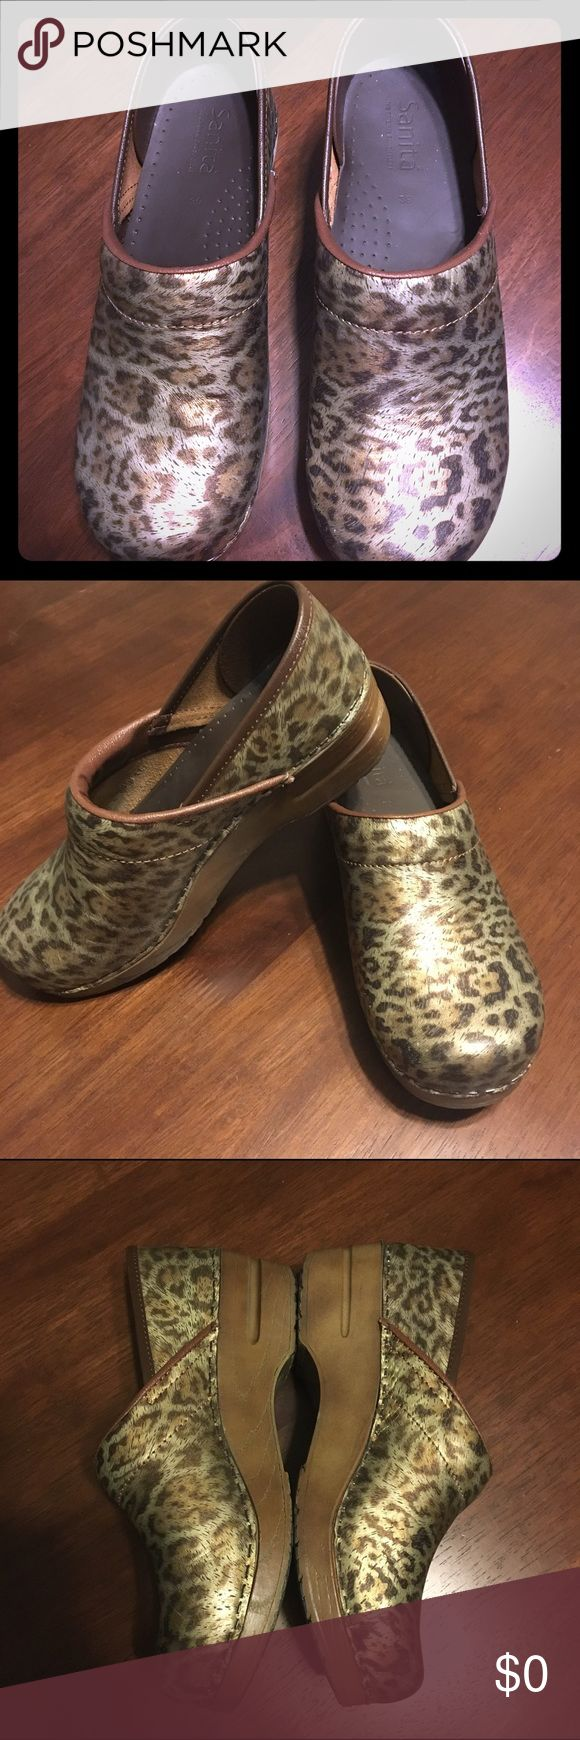 Sanitas women's clogs Beautiful shimmery brown leopard Sanitas clogs. Look brand new except for the bottoms. Sanitas Shoes Mules & Clogs